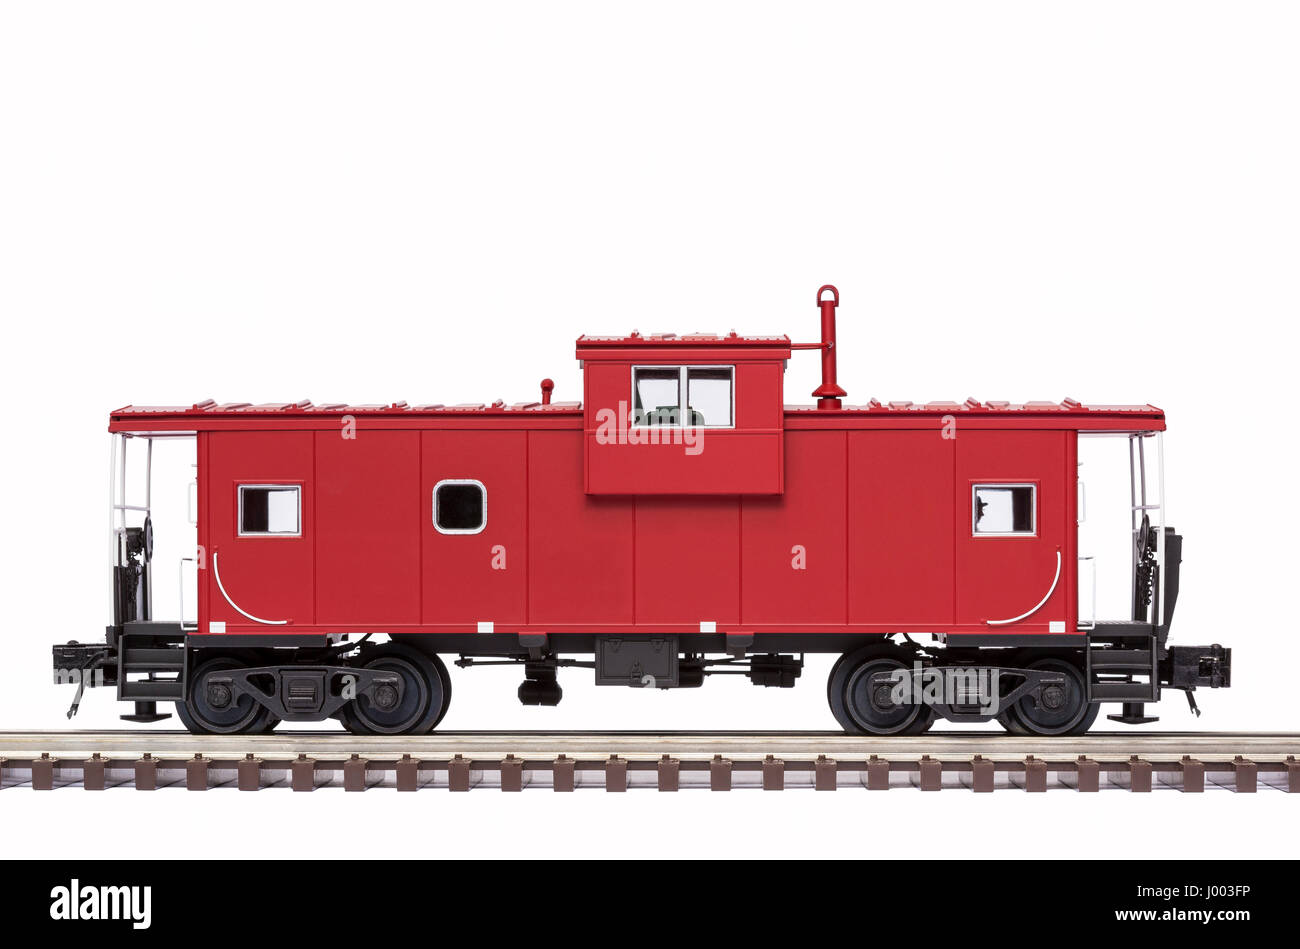 Red Railroad Caboose - Stock Image